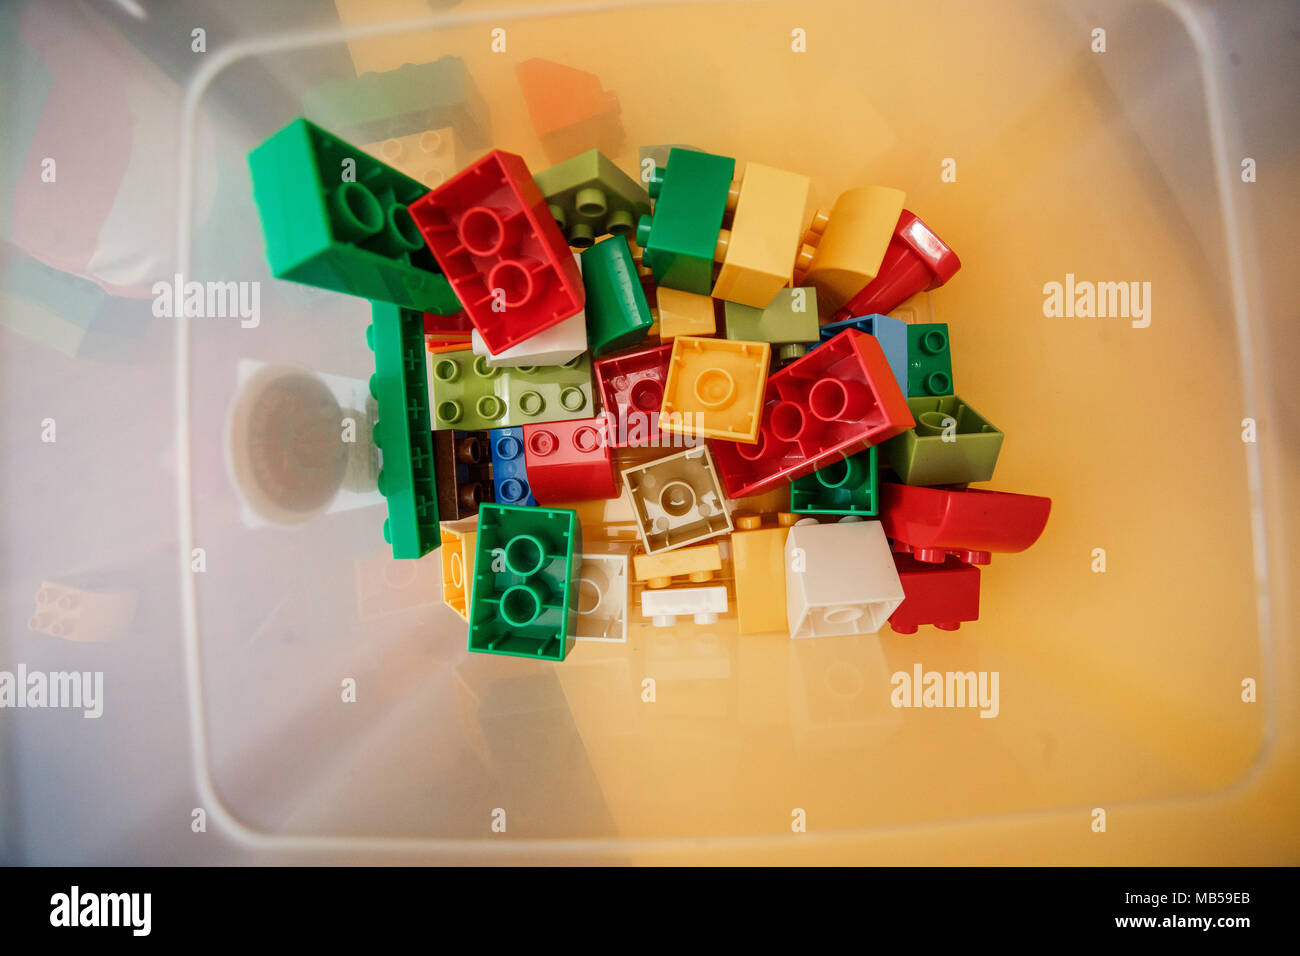 Colorful plastic constructor for children in the box. Top view. - Stock Image